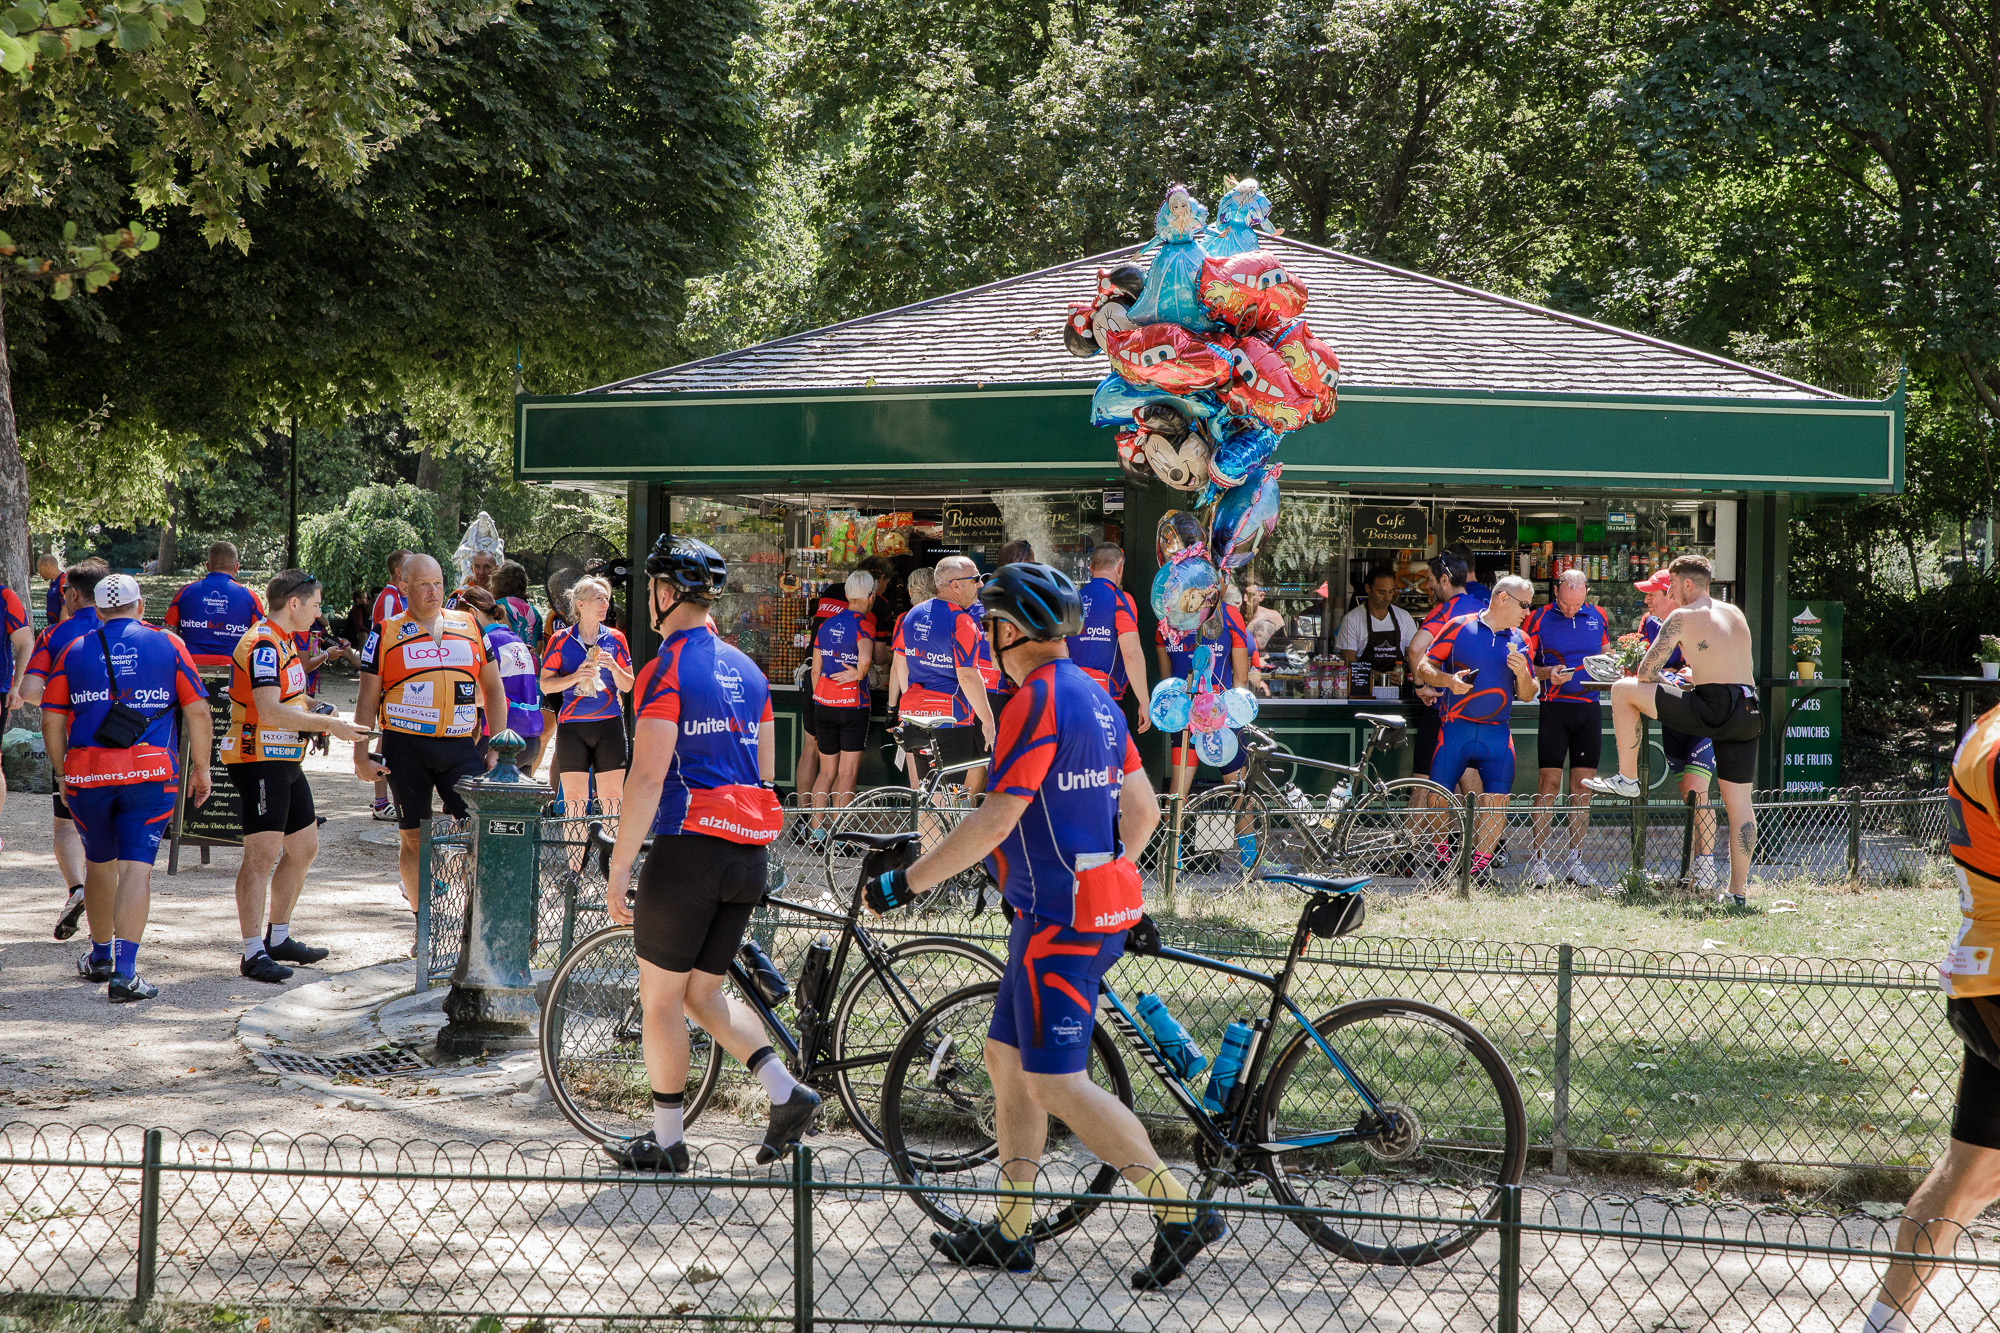 London to Paris Cycle Challenge 2018 - Drinks and ice creams